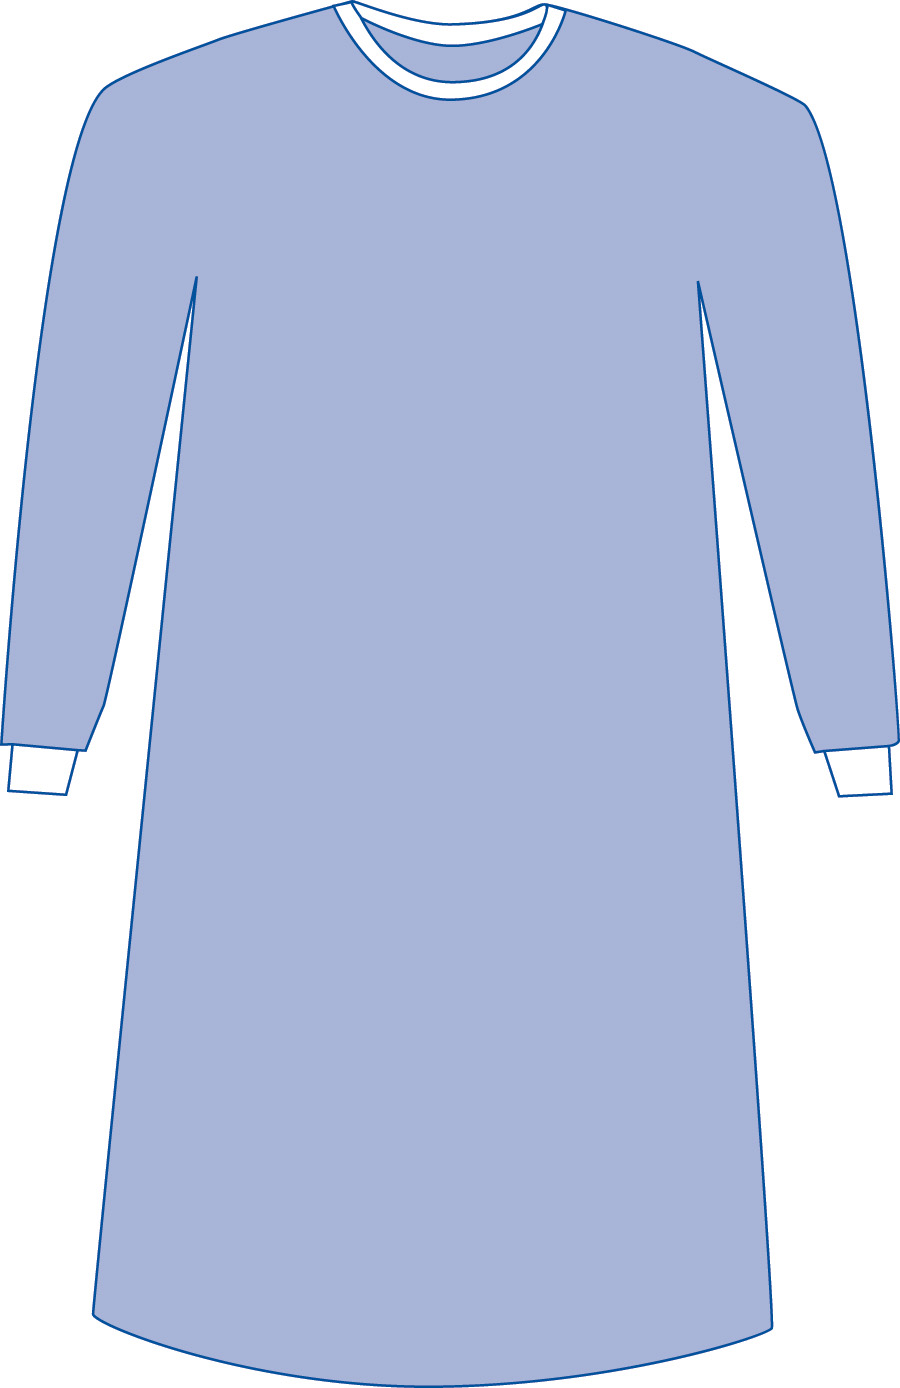 SLEEVE,GOWN,,STERILE,W/CSR WRAP,1/P,60 EA/CS